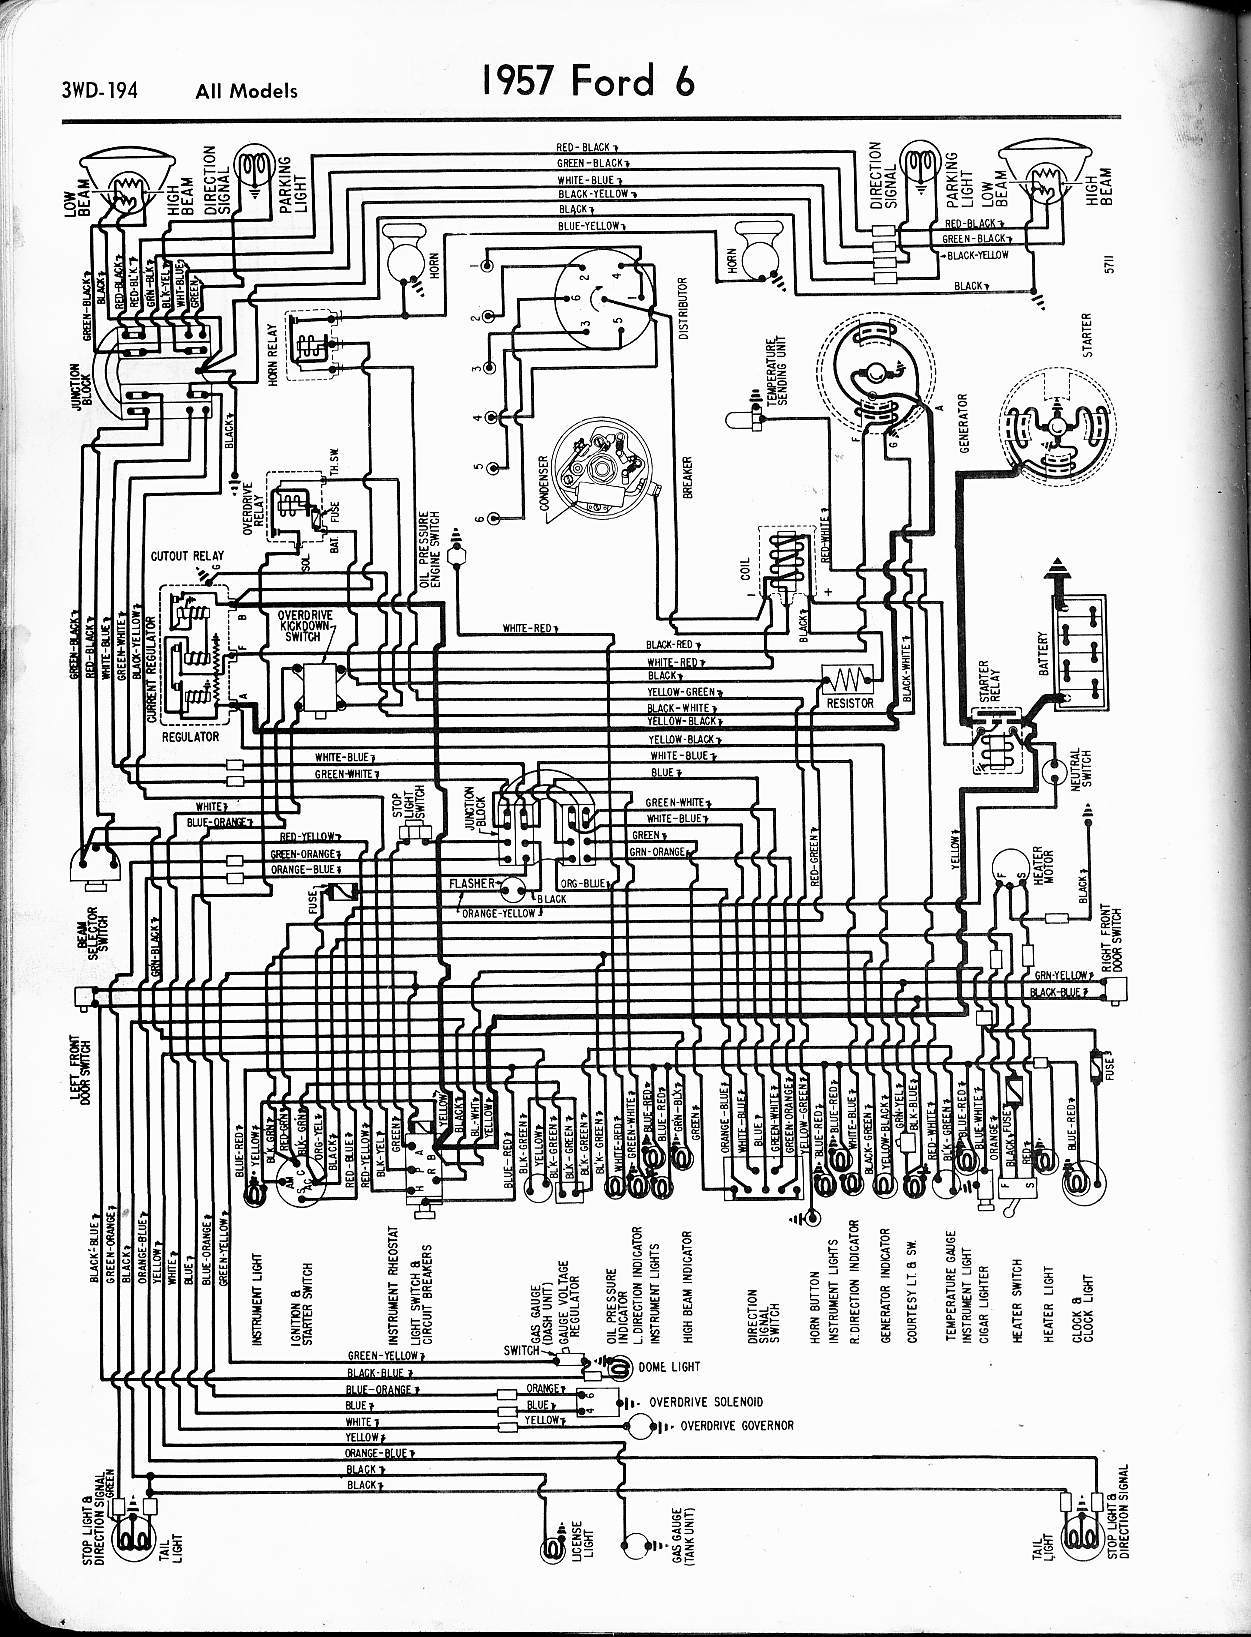 [SCHEMATICS_48ZD]  ☑ 2007 Ford Truck Wiring Diagram HD Quality ☑ er-diagram.twirlinglucca.it | 6929 Meyers Wiring Diagram |  | Diagram Database - Twirlinglucca.it